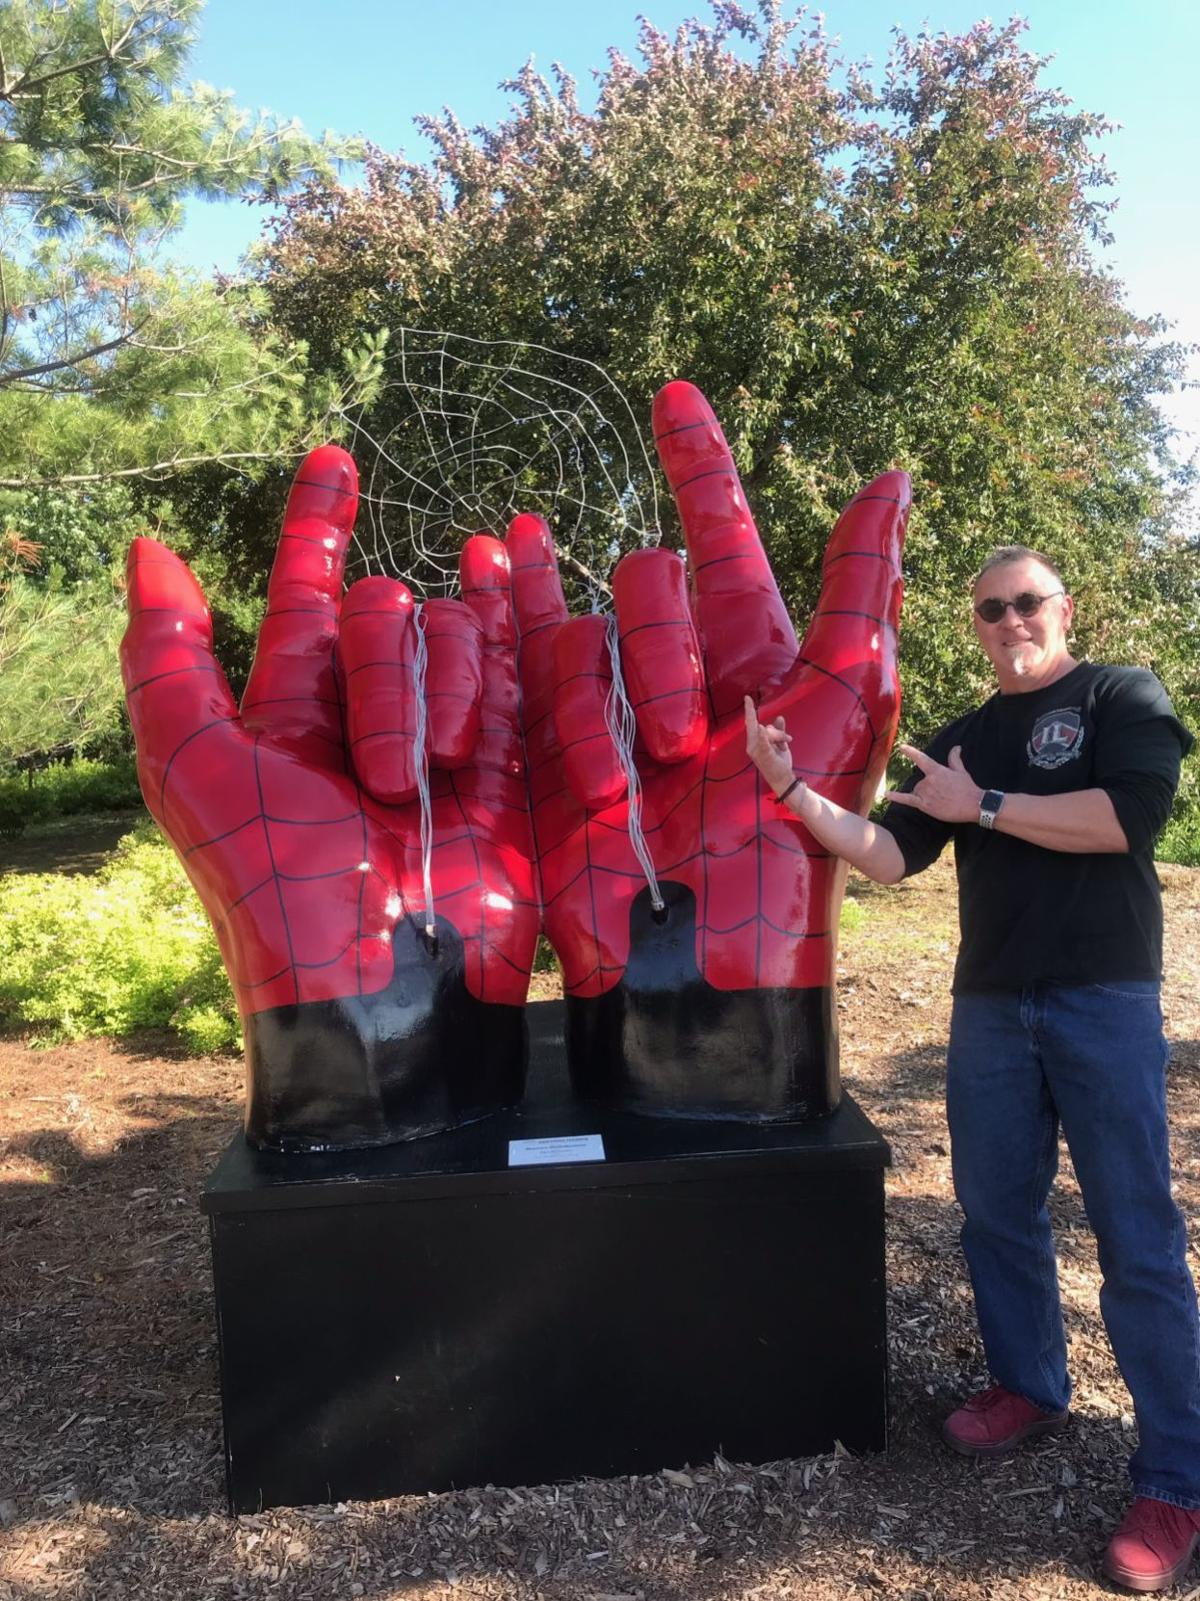 Spiderman hands were inspired by artist's favorite superhero